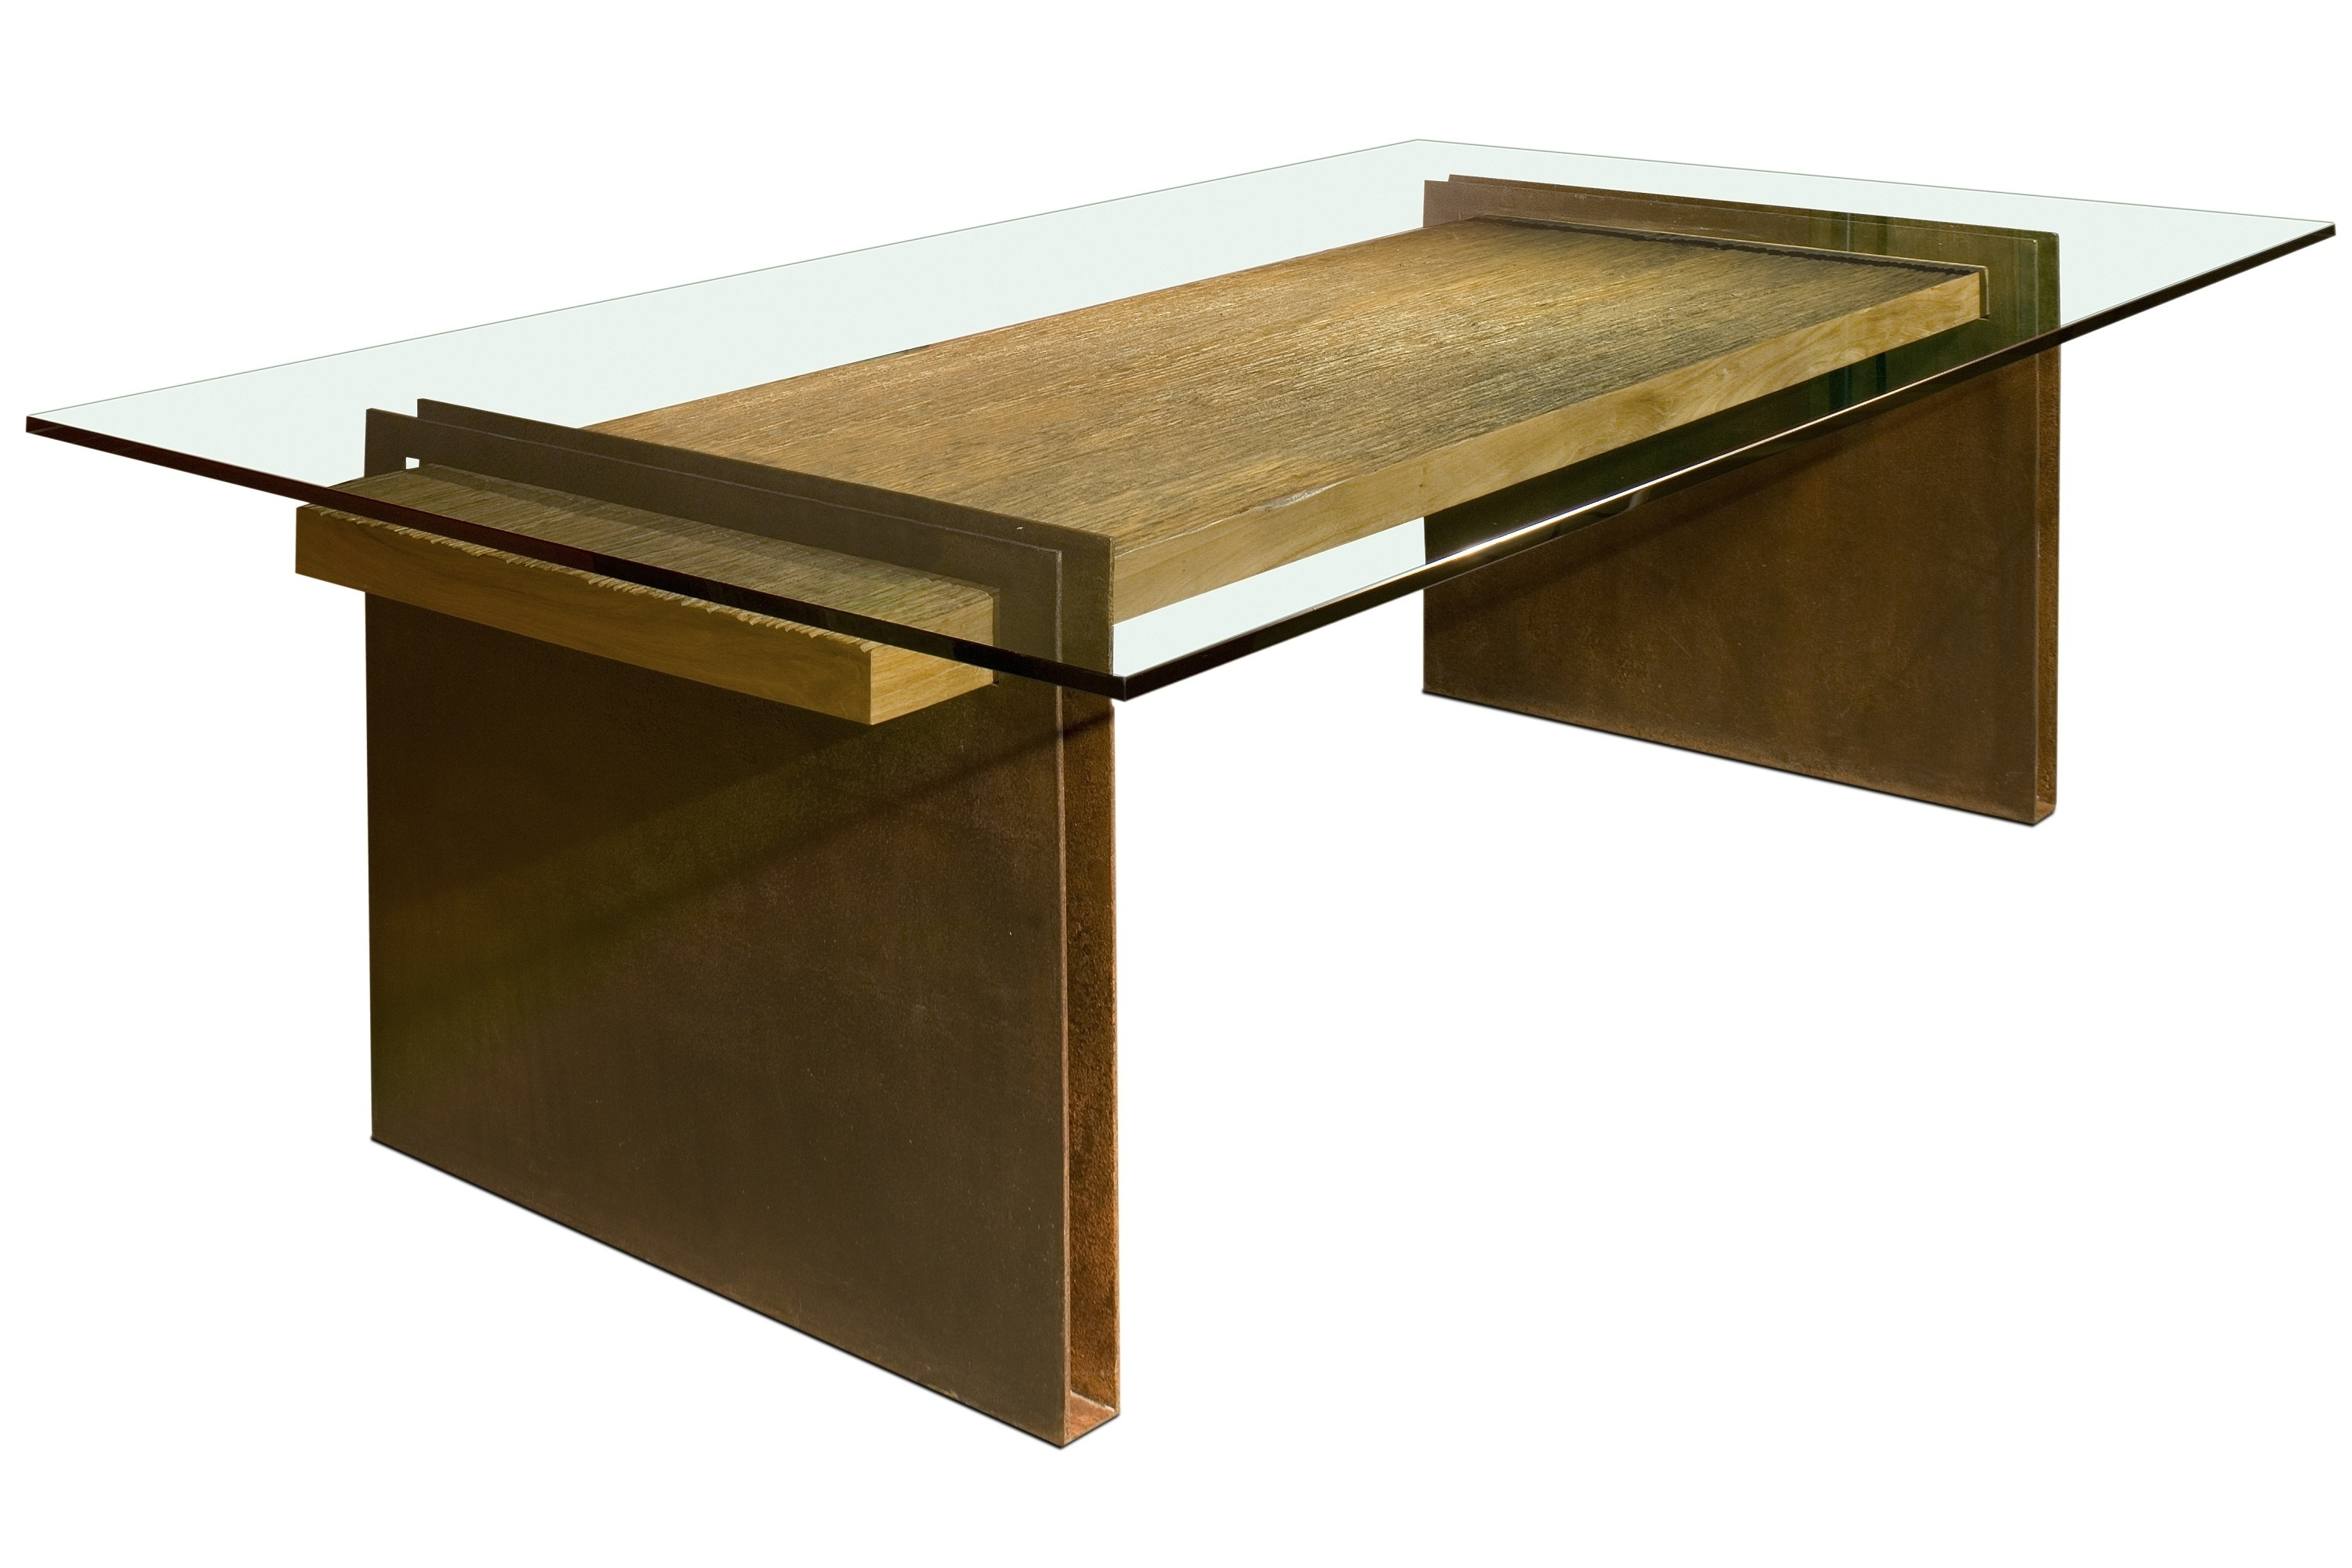 Wooden Dining Room Table With Rectangular Glass On Top